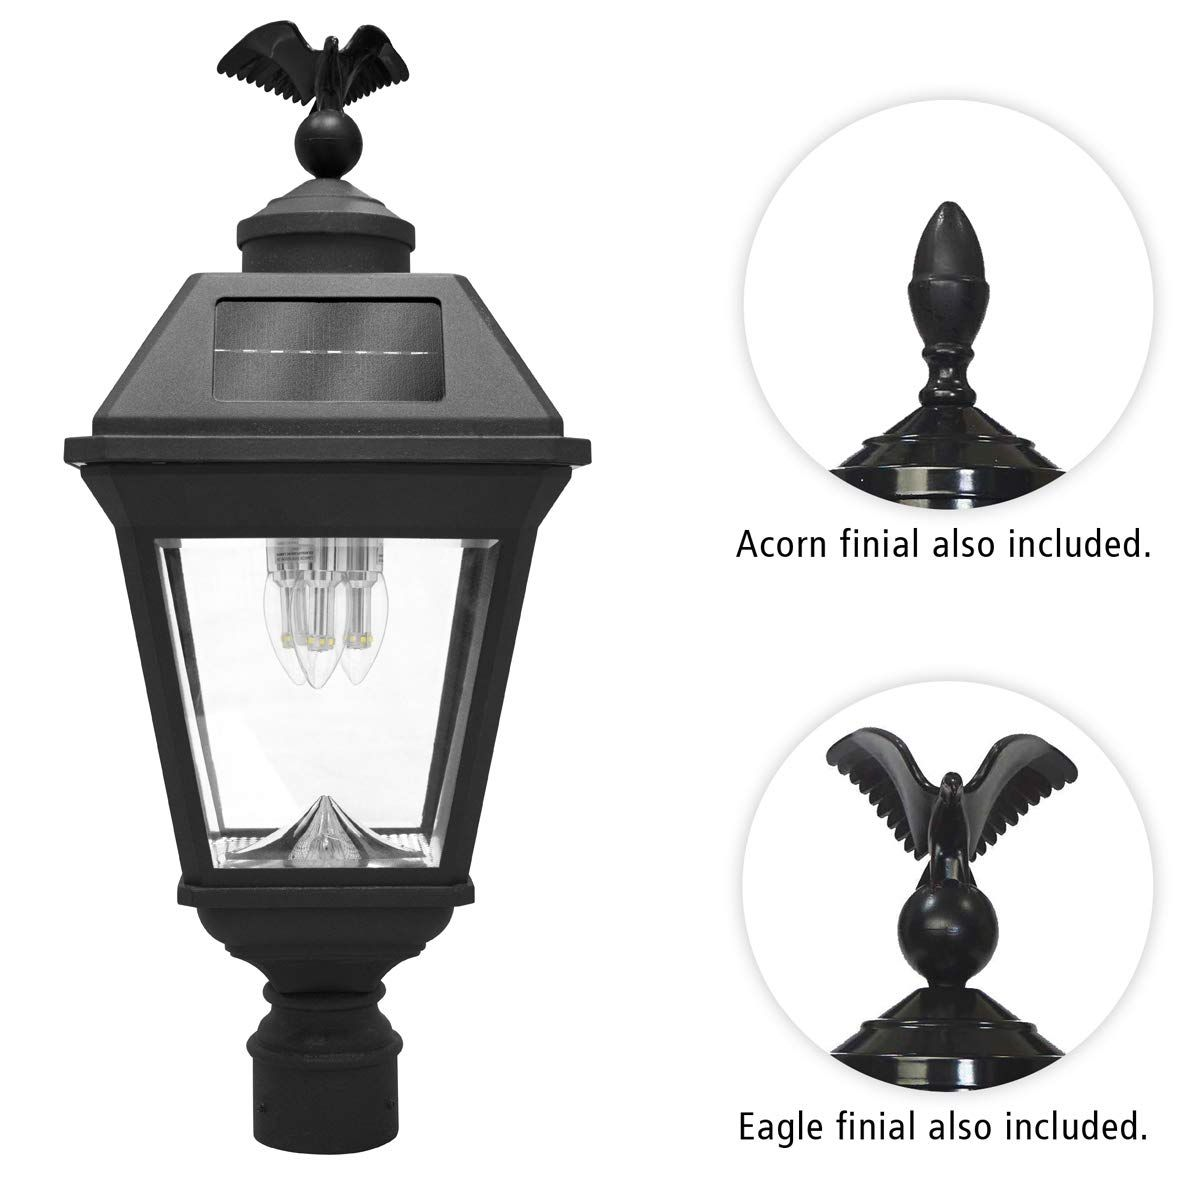 Gama Sonic Imperial Bulb Solar Post Lamp Outdoor Solar Powered Light Pole Post Mount Black Gs 97b Outdoor Post Lights Solar Light Bulb Diy Outdoor Lighting